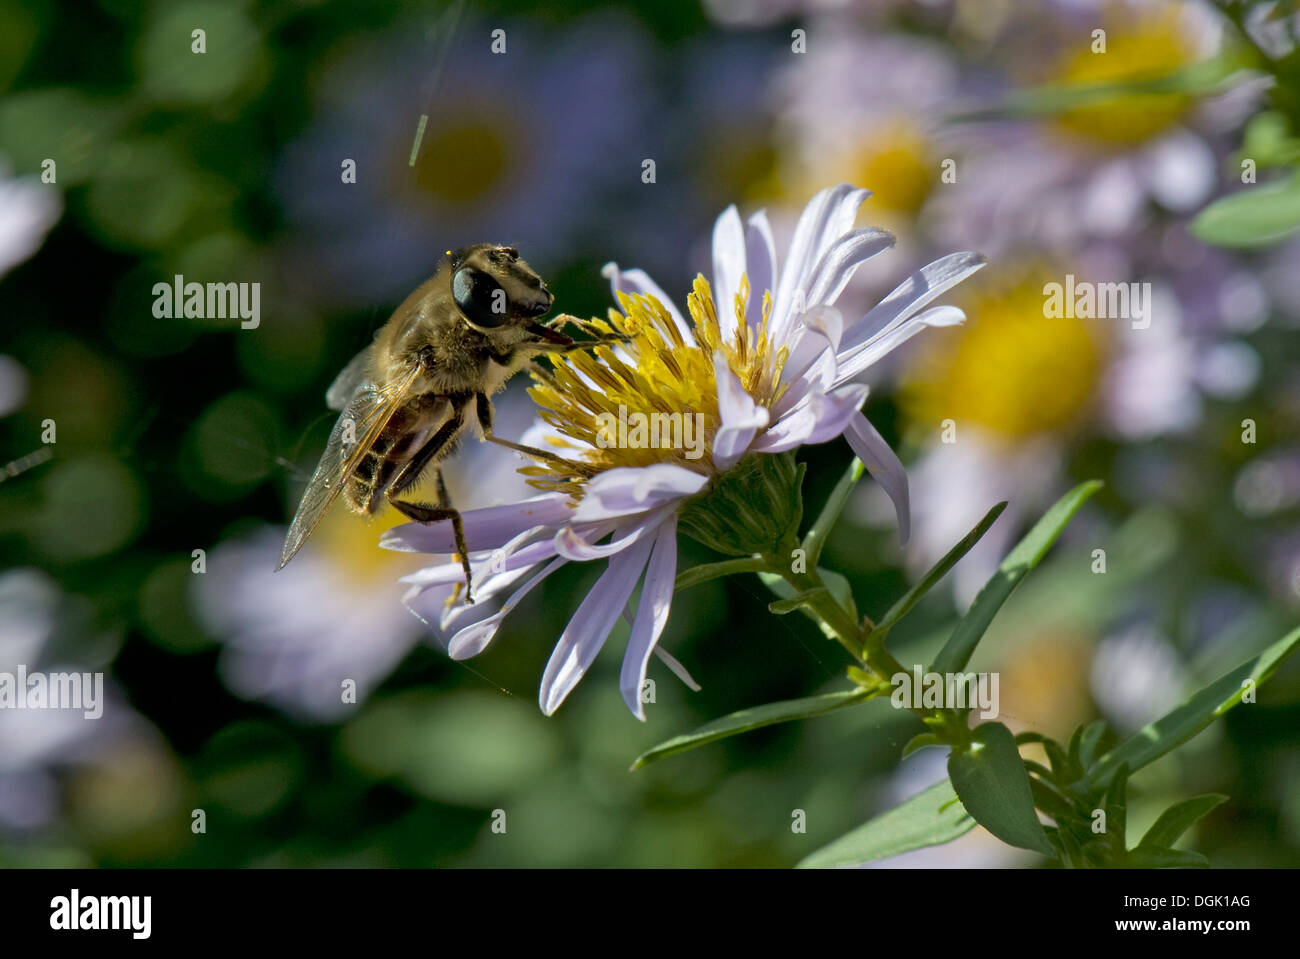 Drone fly, Eristalis tenax, taking nectar from a michaelmas daisy, Aster spp., flower in autumn - Stock Image